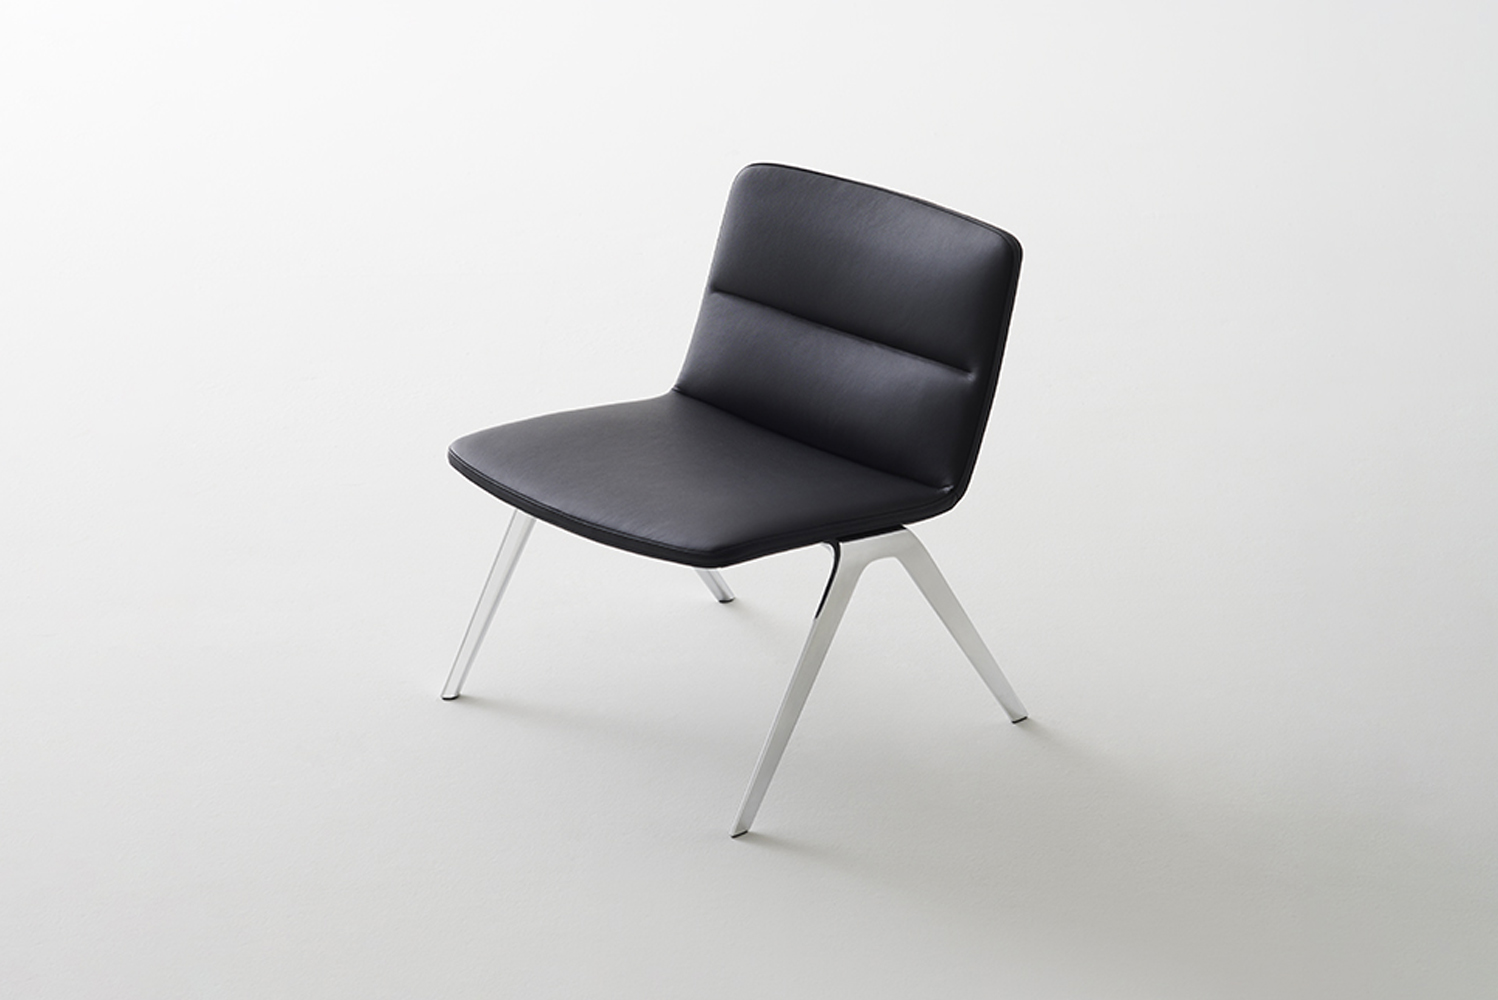 Davis Furniture introduced the A-Lounge seating designed by jehs+laub.